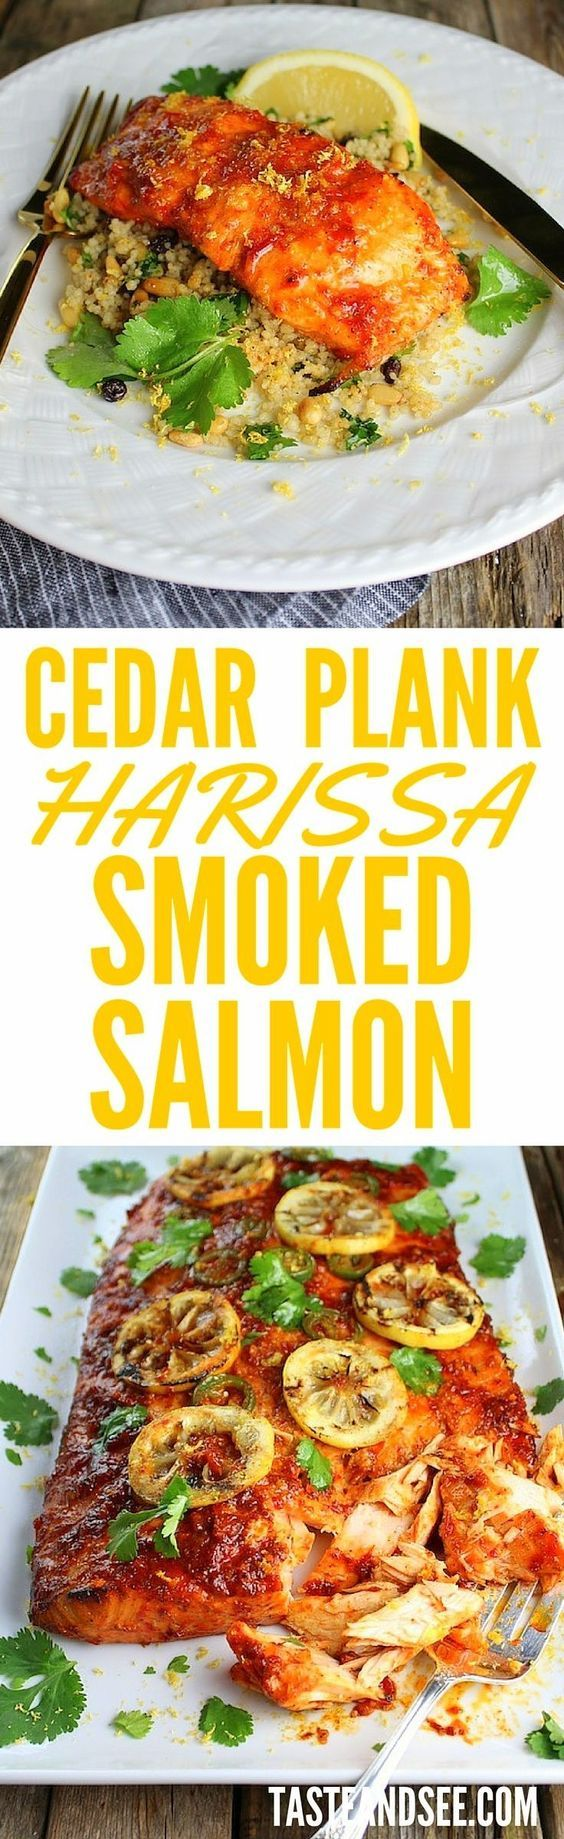 Cedar Plank Harissa Smoked Salmon marinated w/garlic, honey, lemon, harissa, & paprika, served with Moroccan couscous. Tender, flaky, & full of flavor!   #salmon http://tasteandsee.com